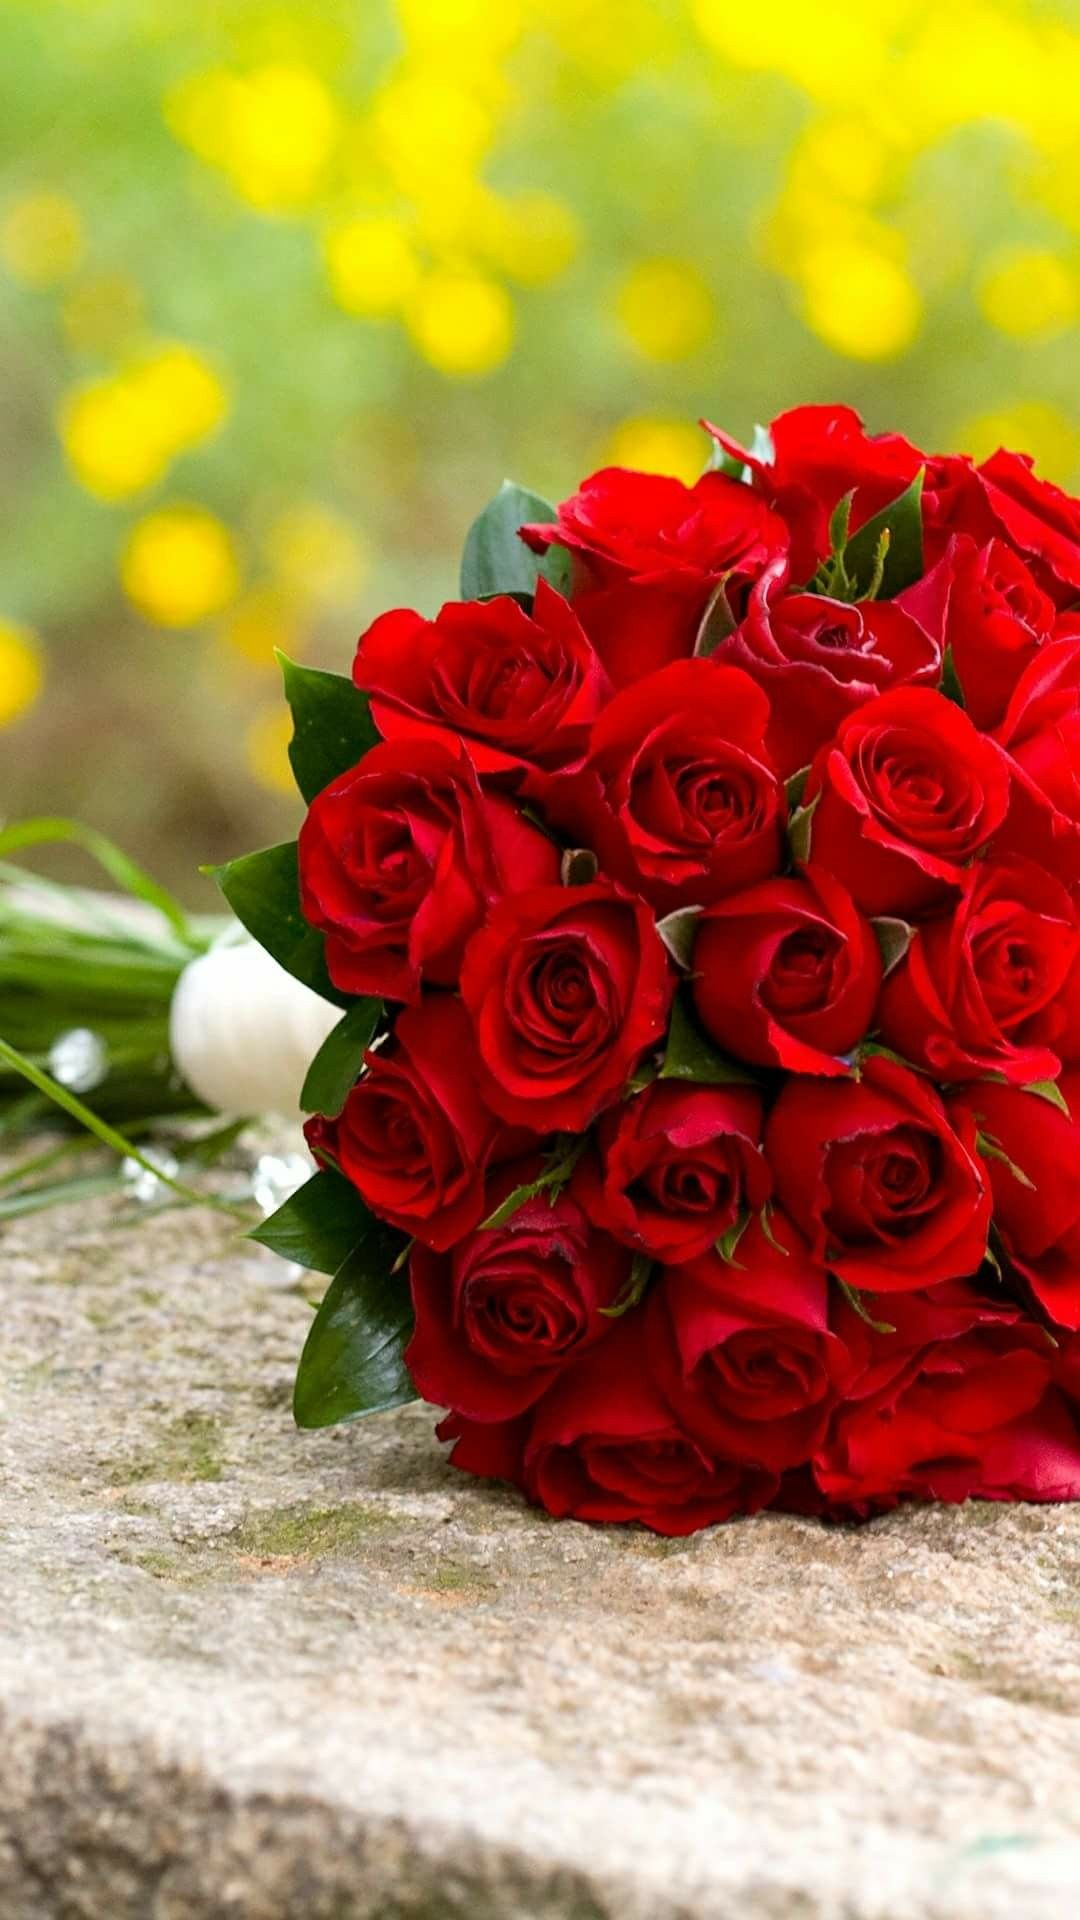 Pin By Nora Monica On Red Rose Flowers Good Morning Happy Sunday Happy Sunday Morning Good Morning Flowers